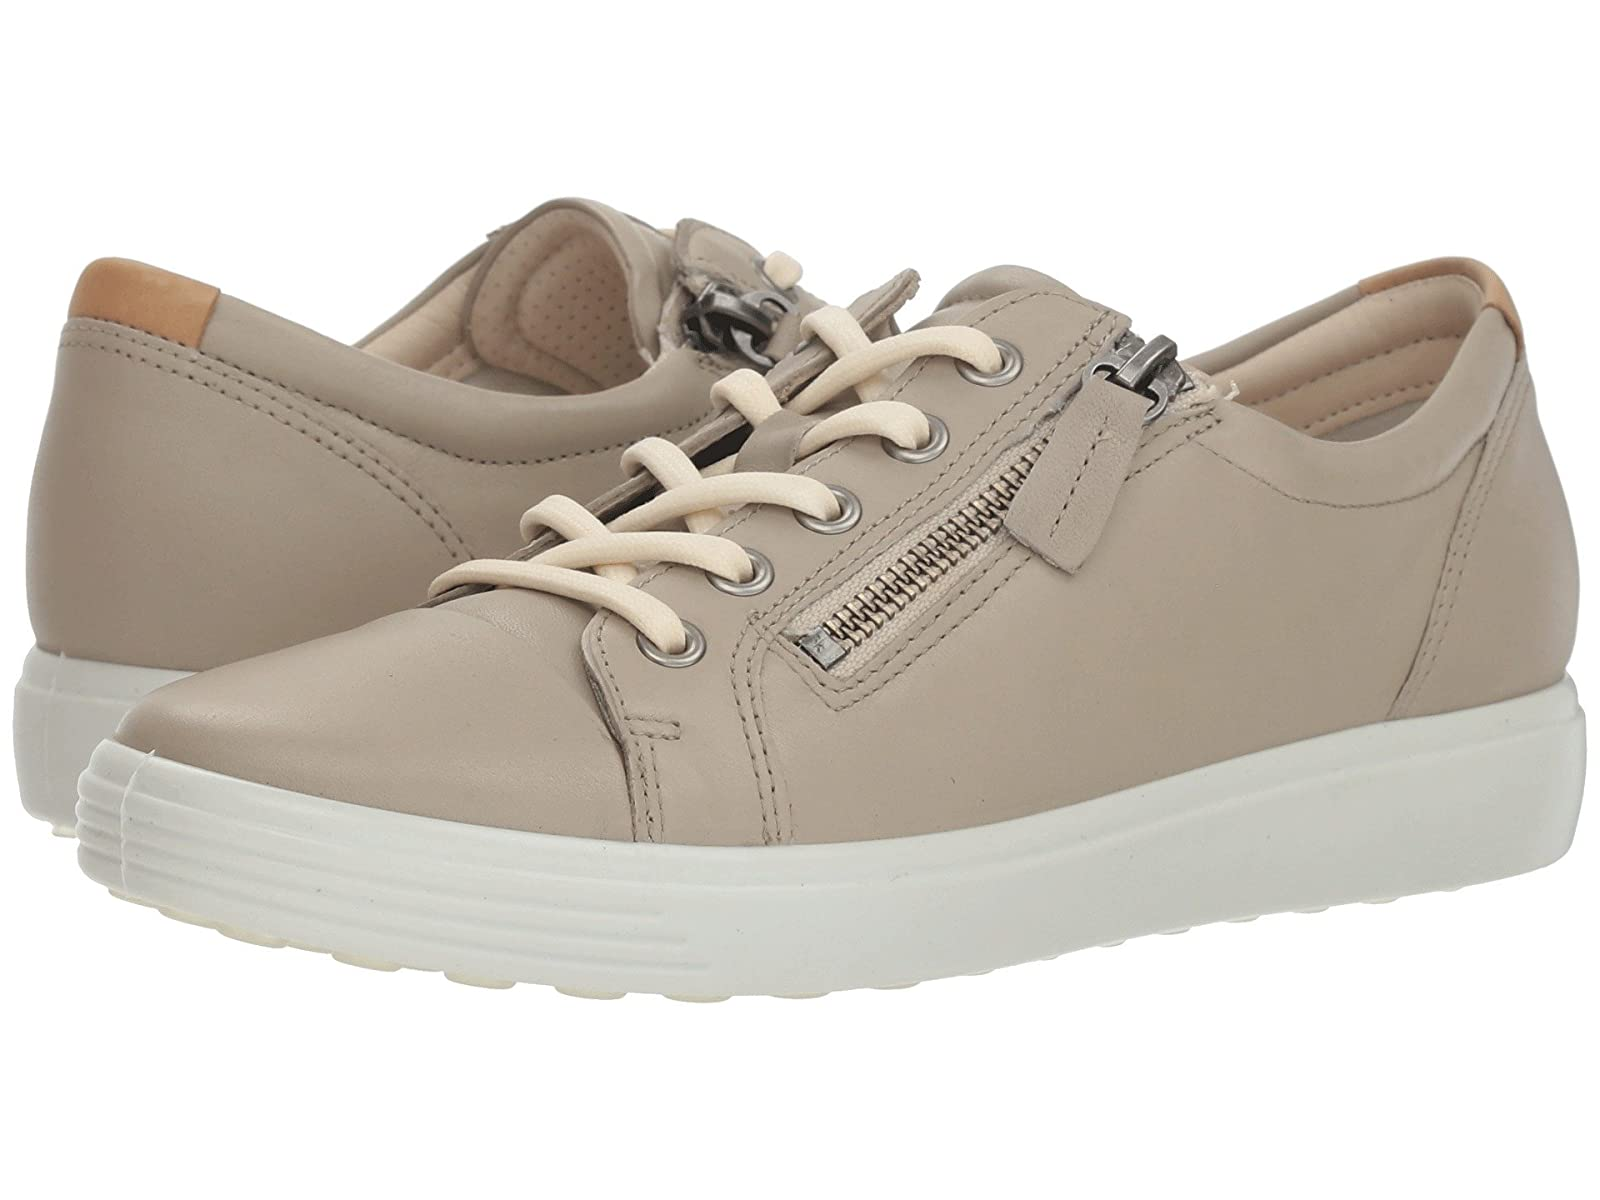 ECCO Soft 7 Side ZipCheap and distinctive eye-catching shoes